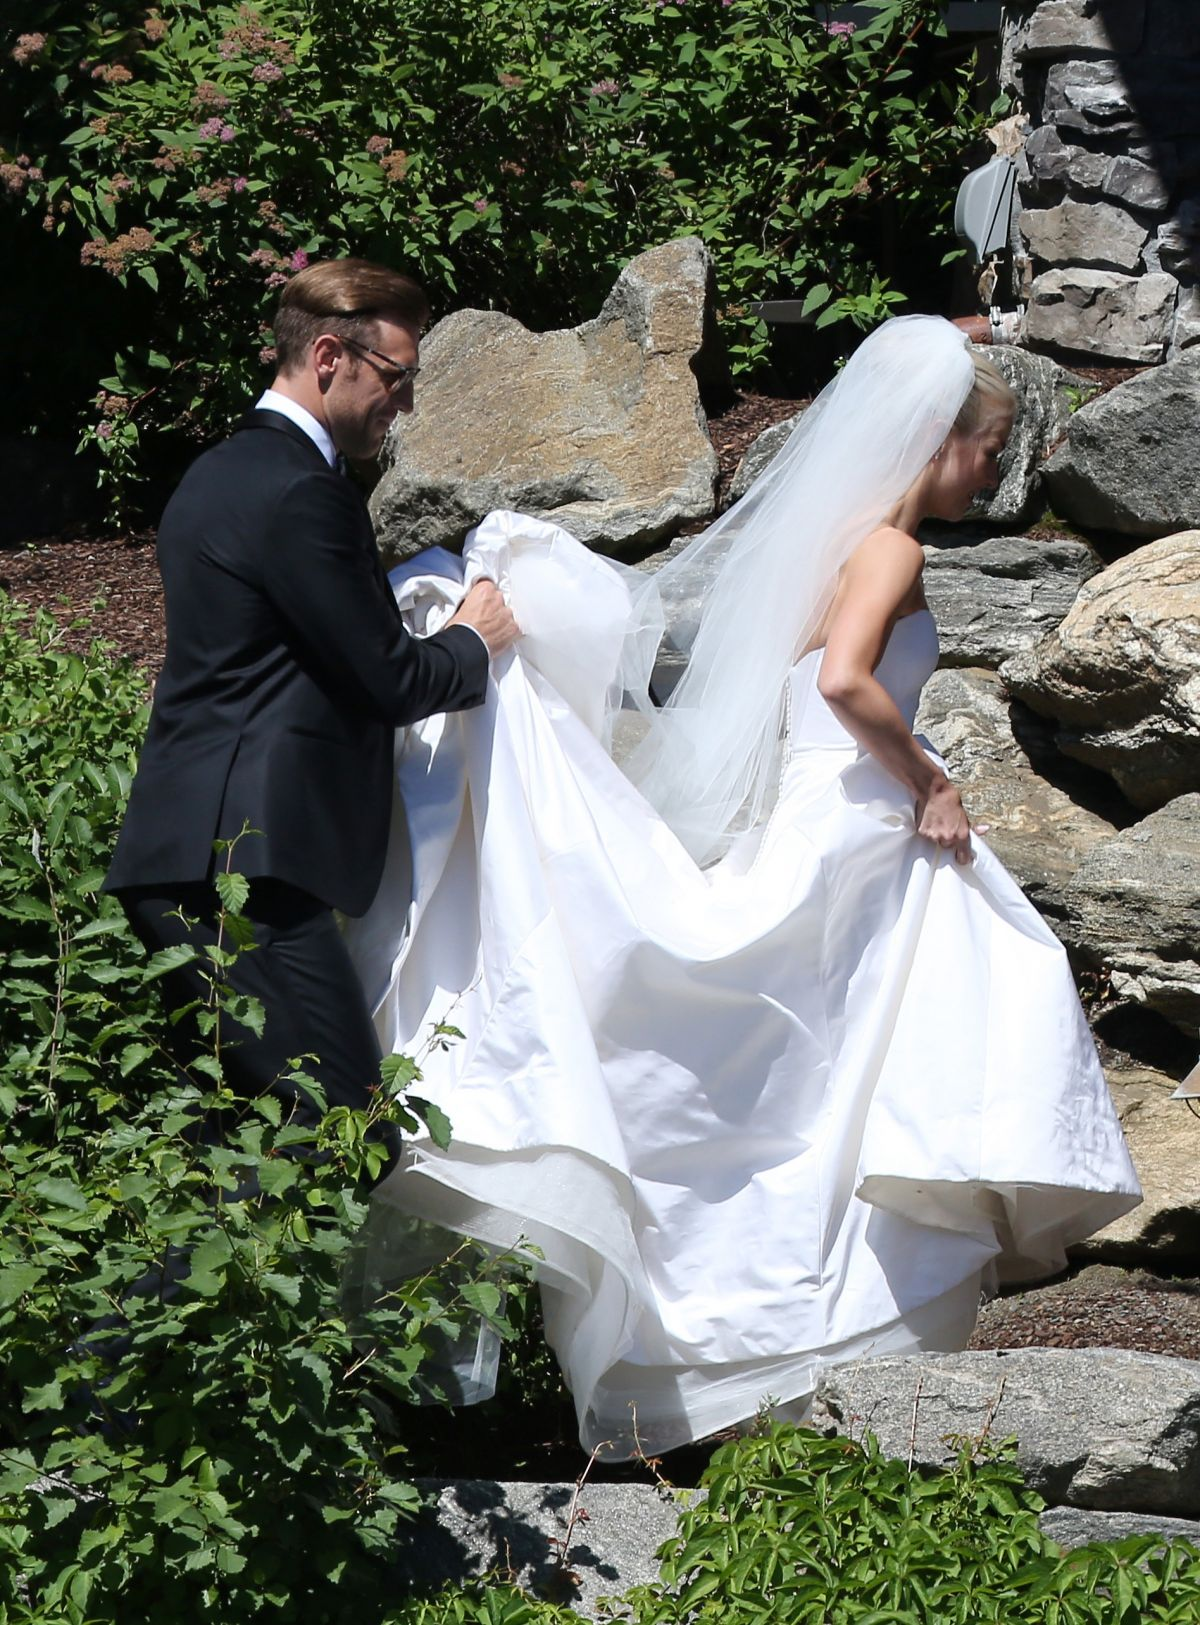 Julianne hough s wedding date for Julianne hough wedding pictures